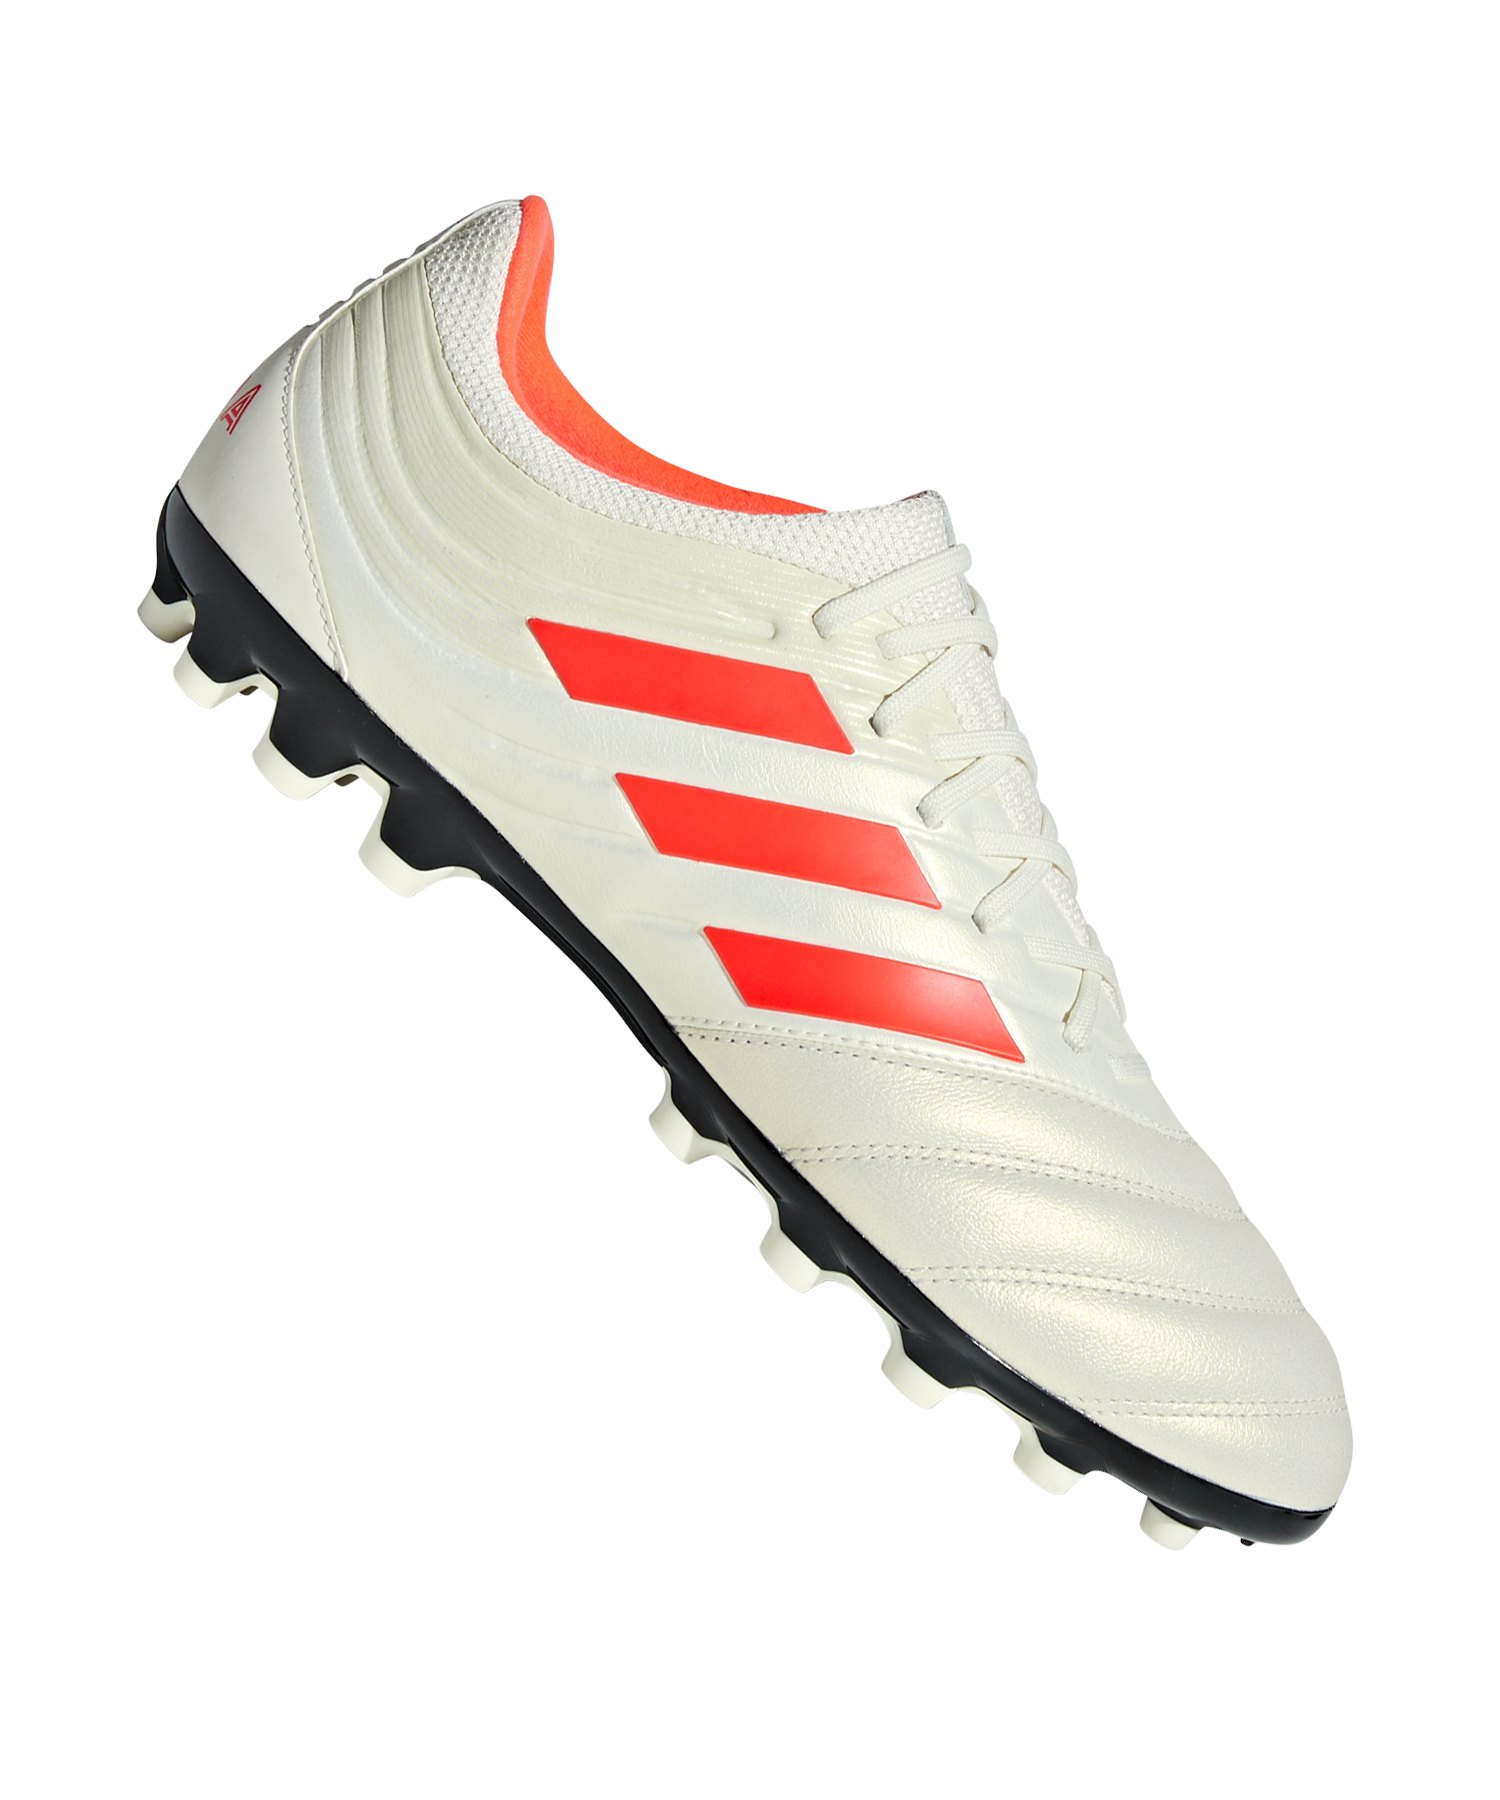 adidas COPA 19.3 AG Weiss Rot